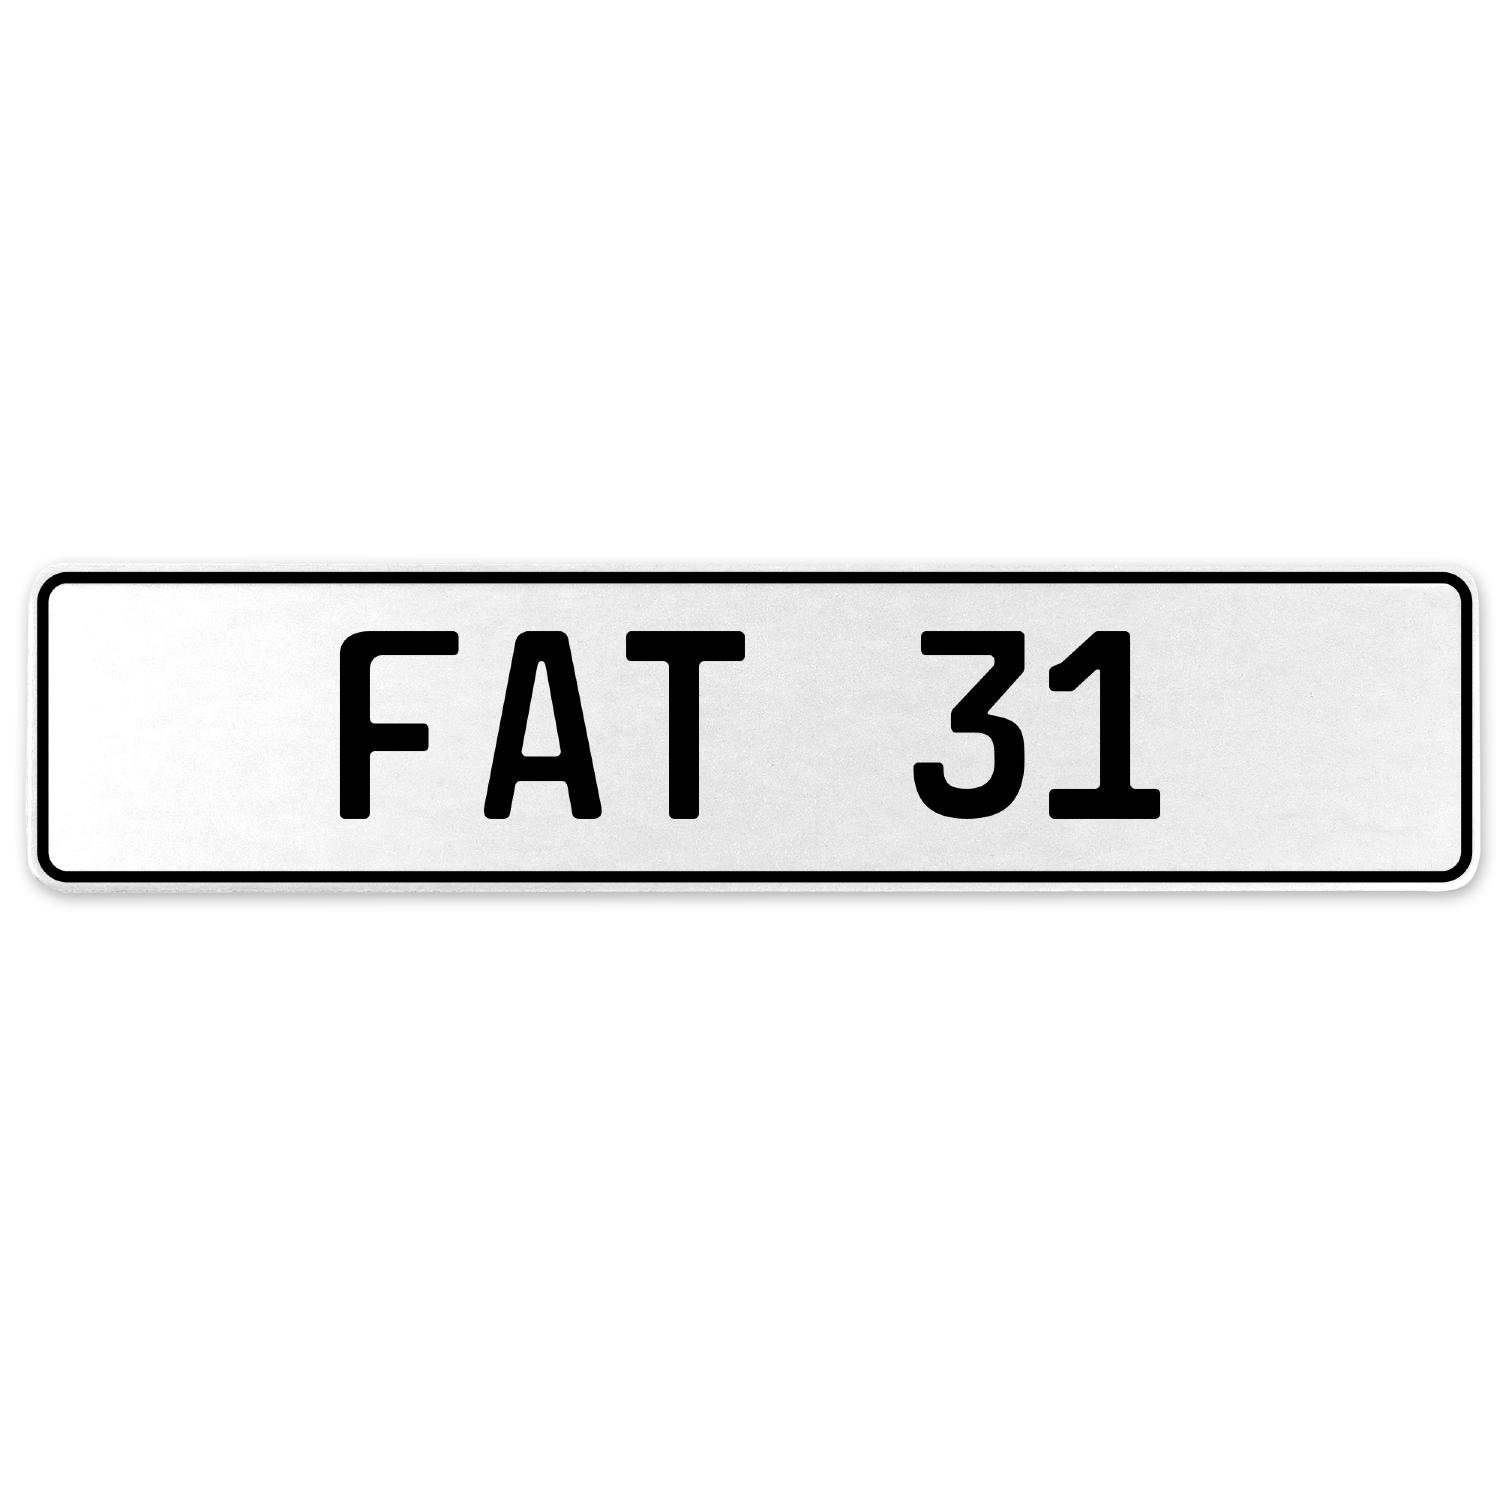 Vintage Parts 554529 Fat 31 White Stamped Aluminum European License Plate